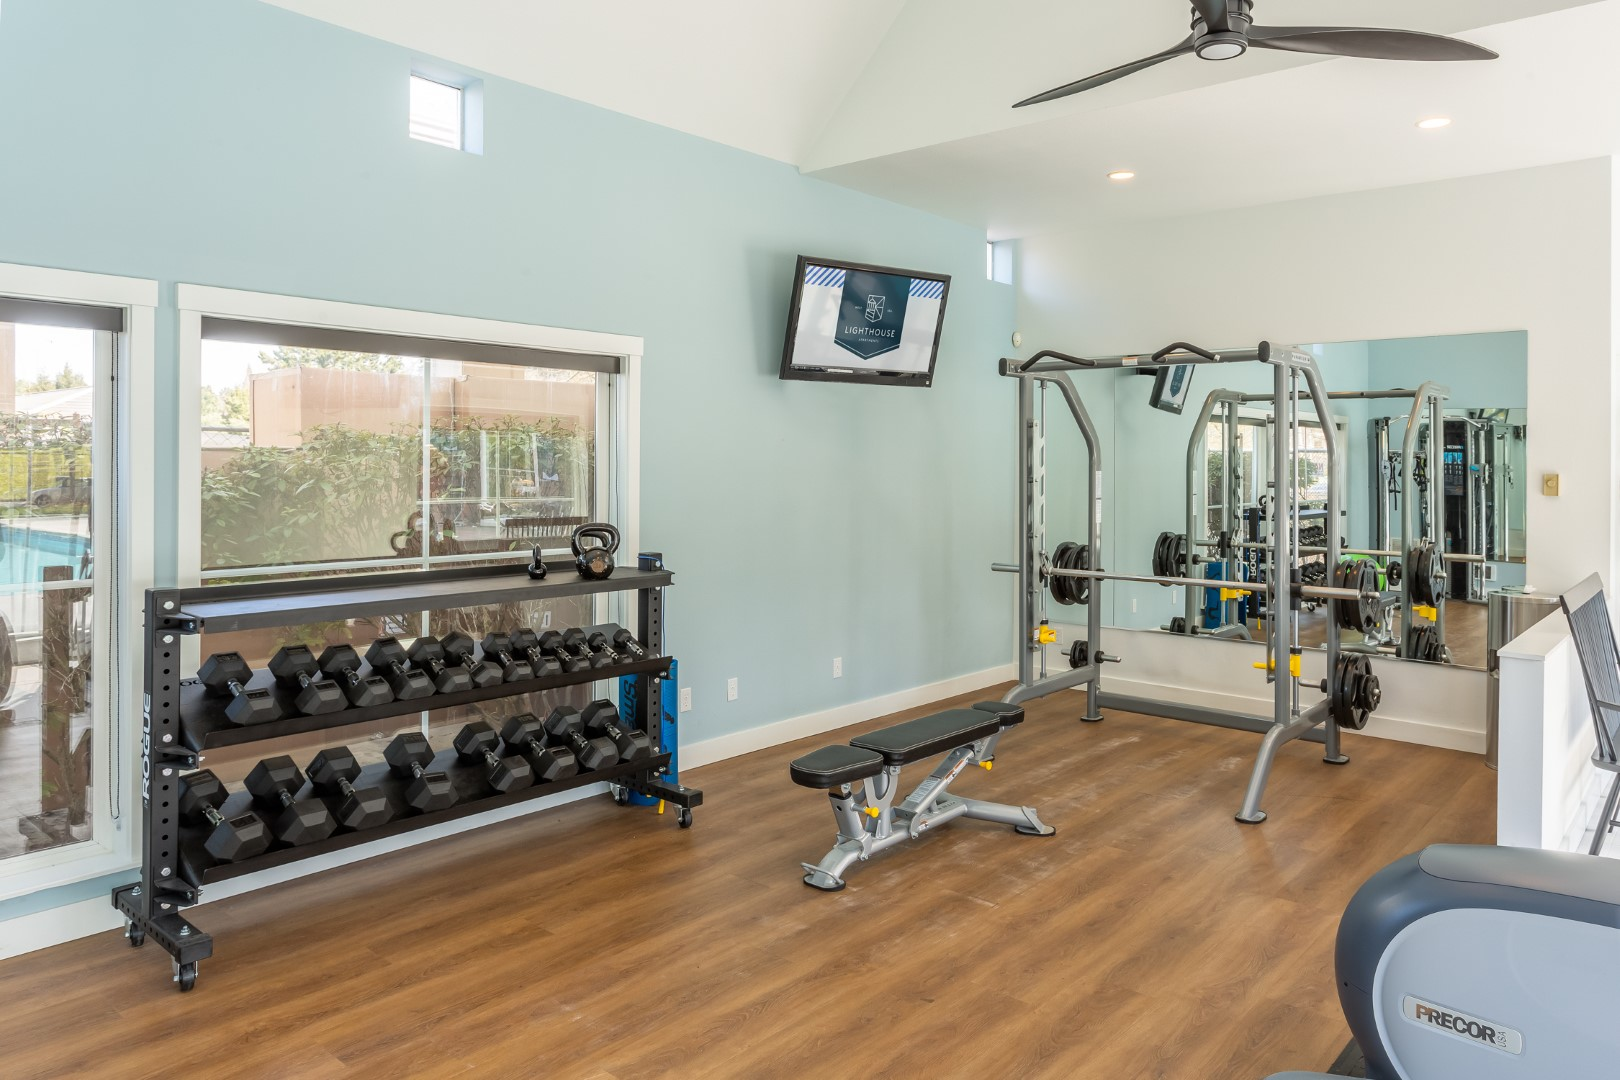 A weight rack sits against the wall in this weight room.